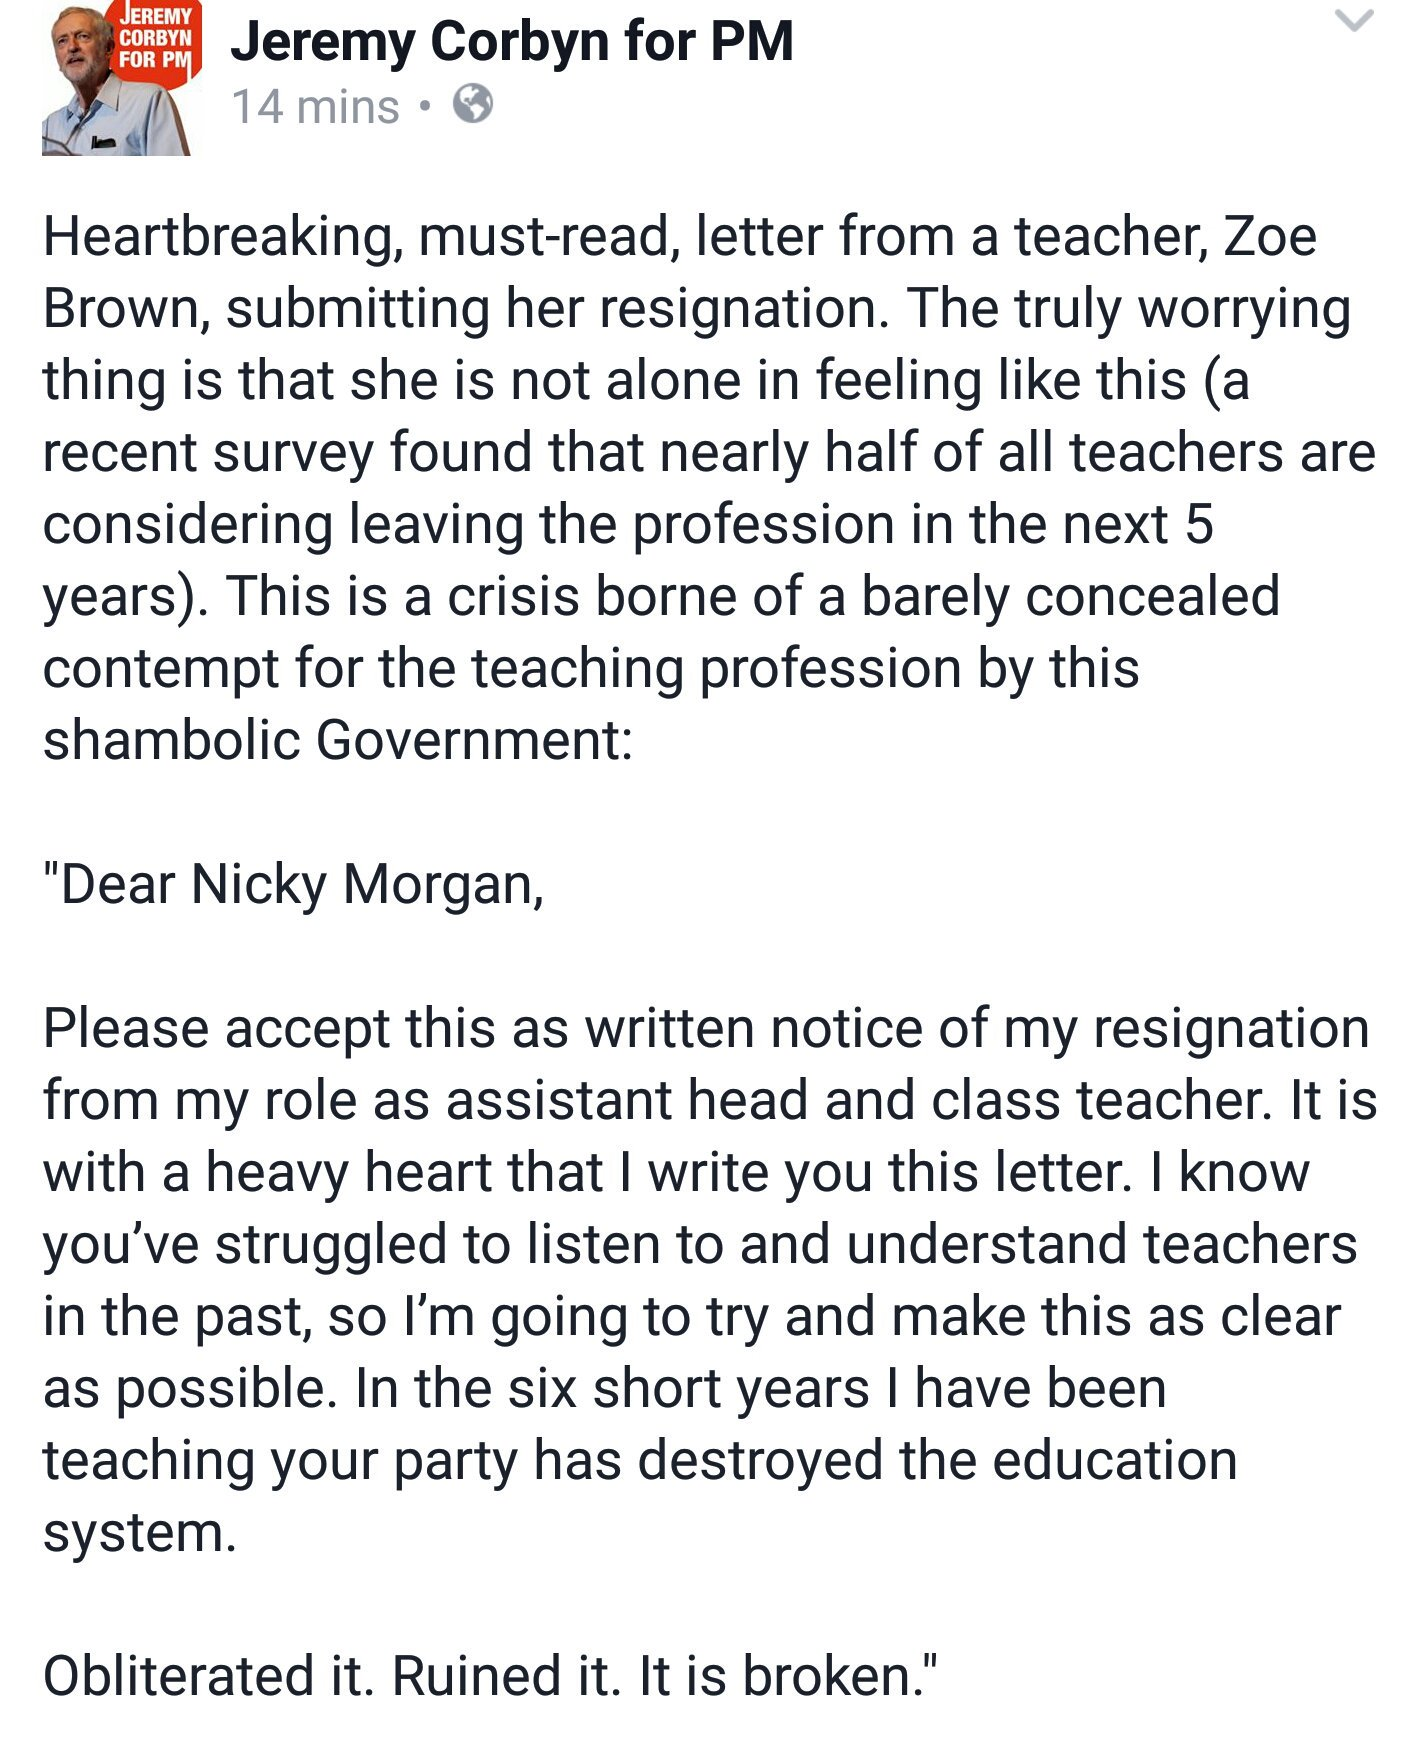 Letter Of Resignation For Teaching from pbs.twimg.com